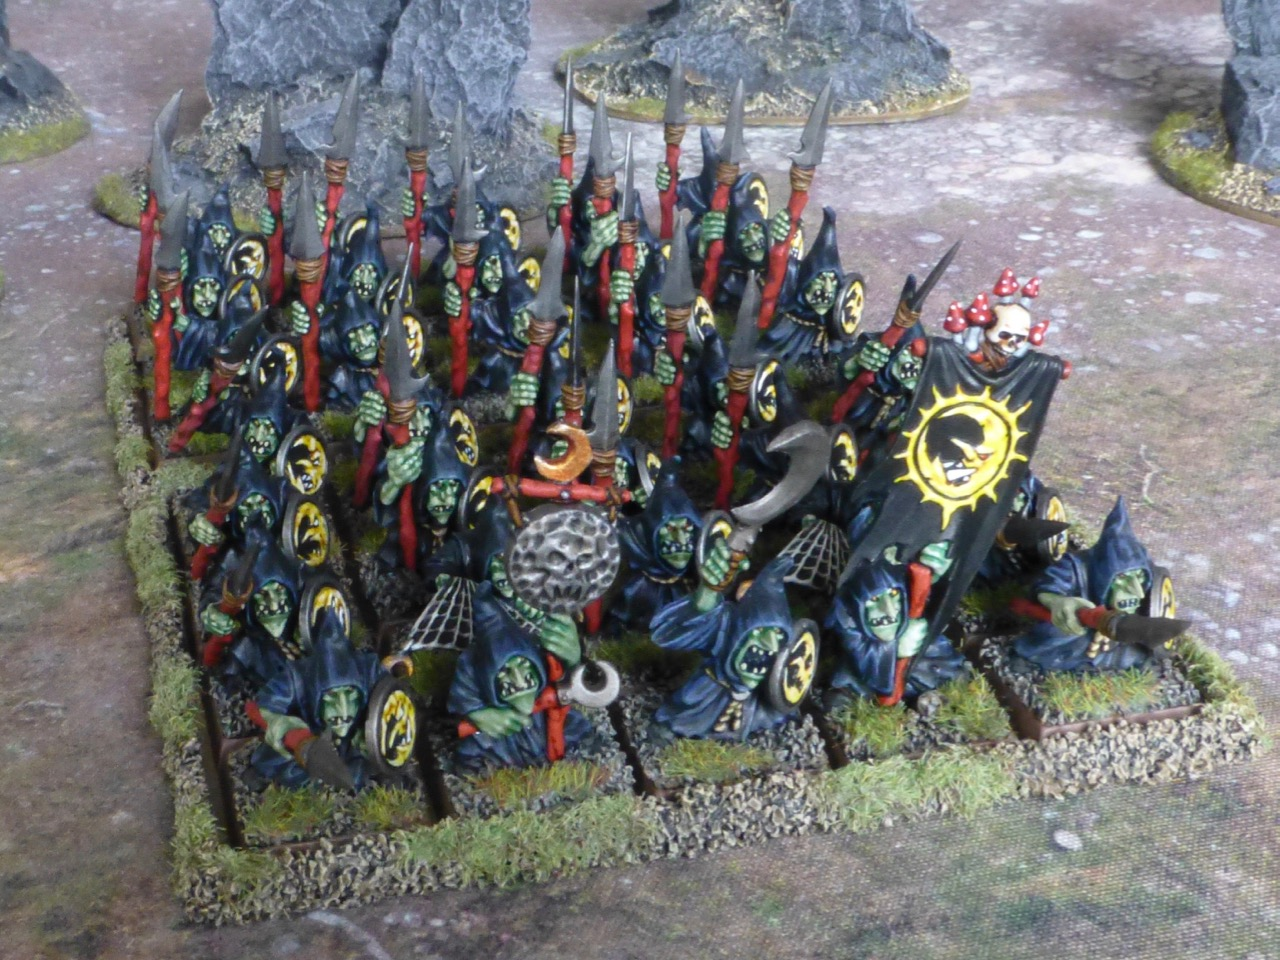 Large block of goblin infantry in black robes, carrying spears and shields